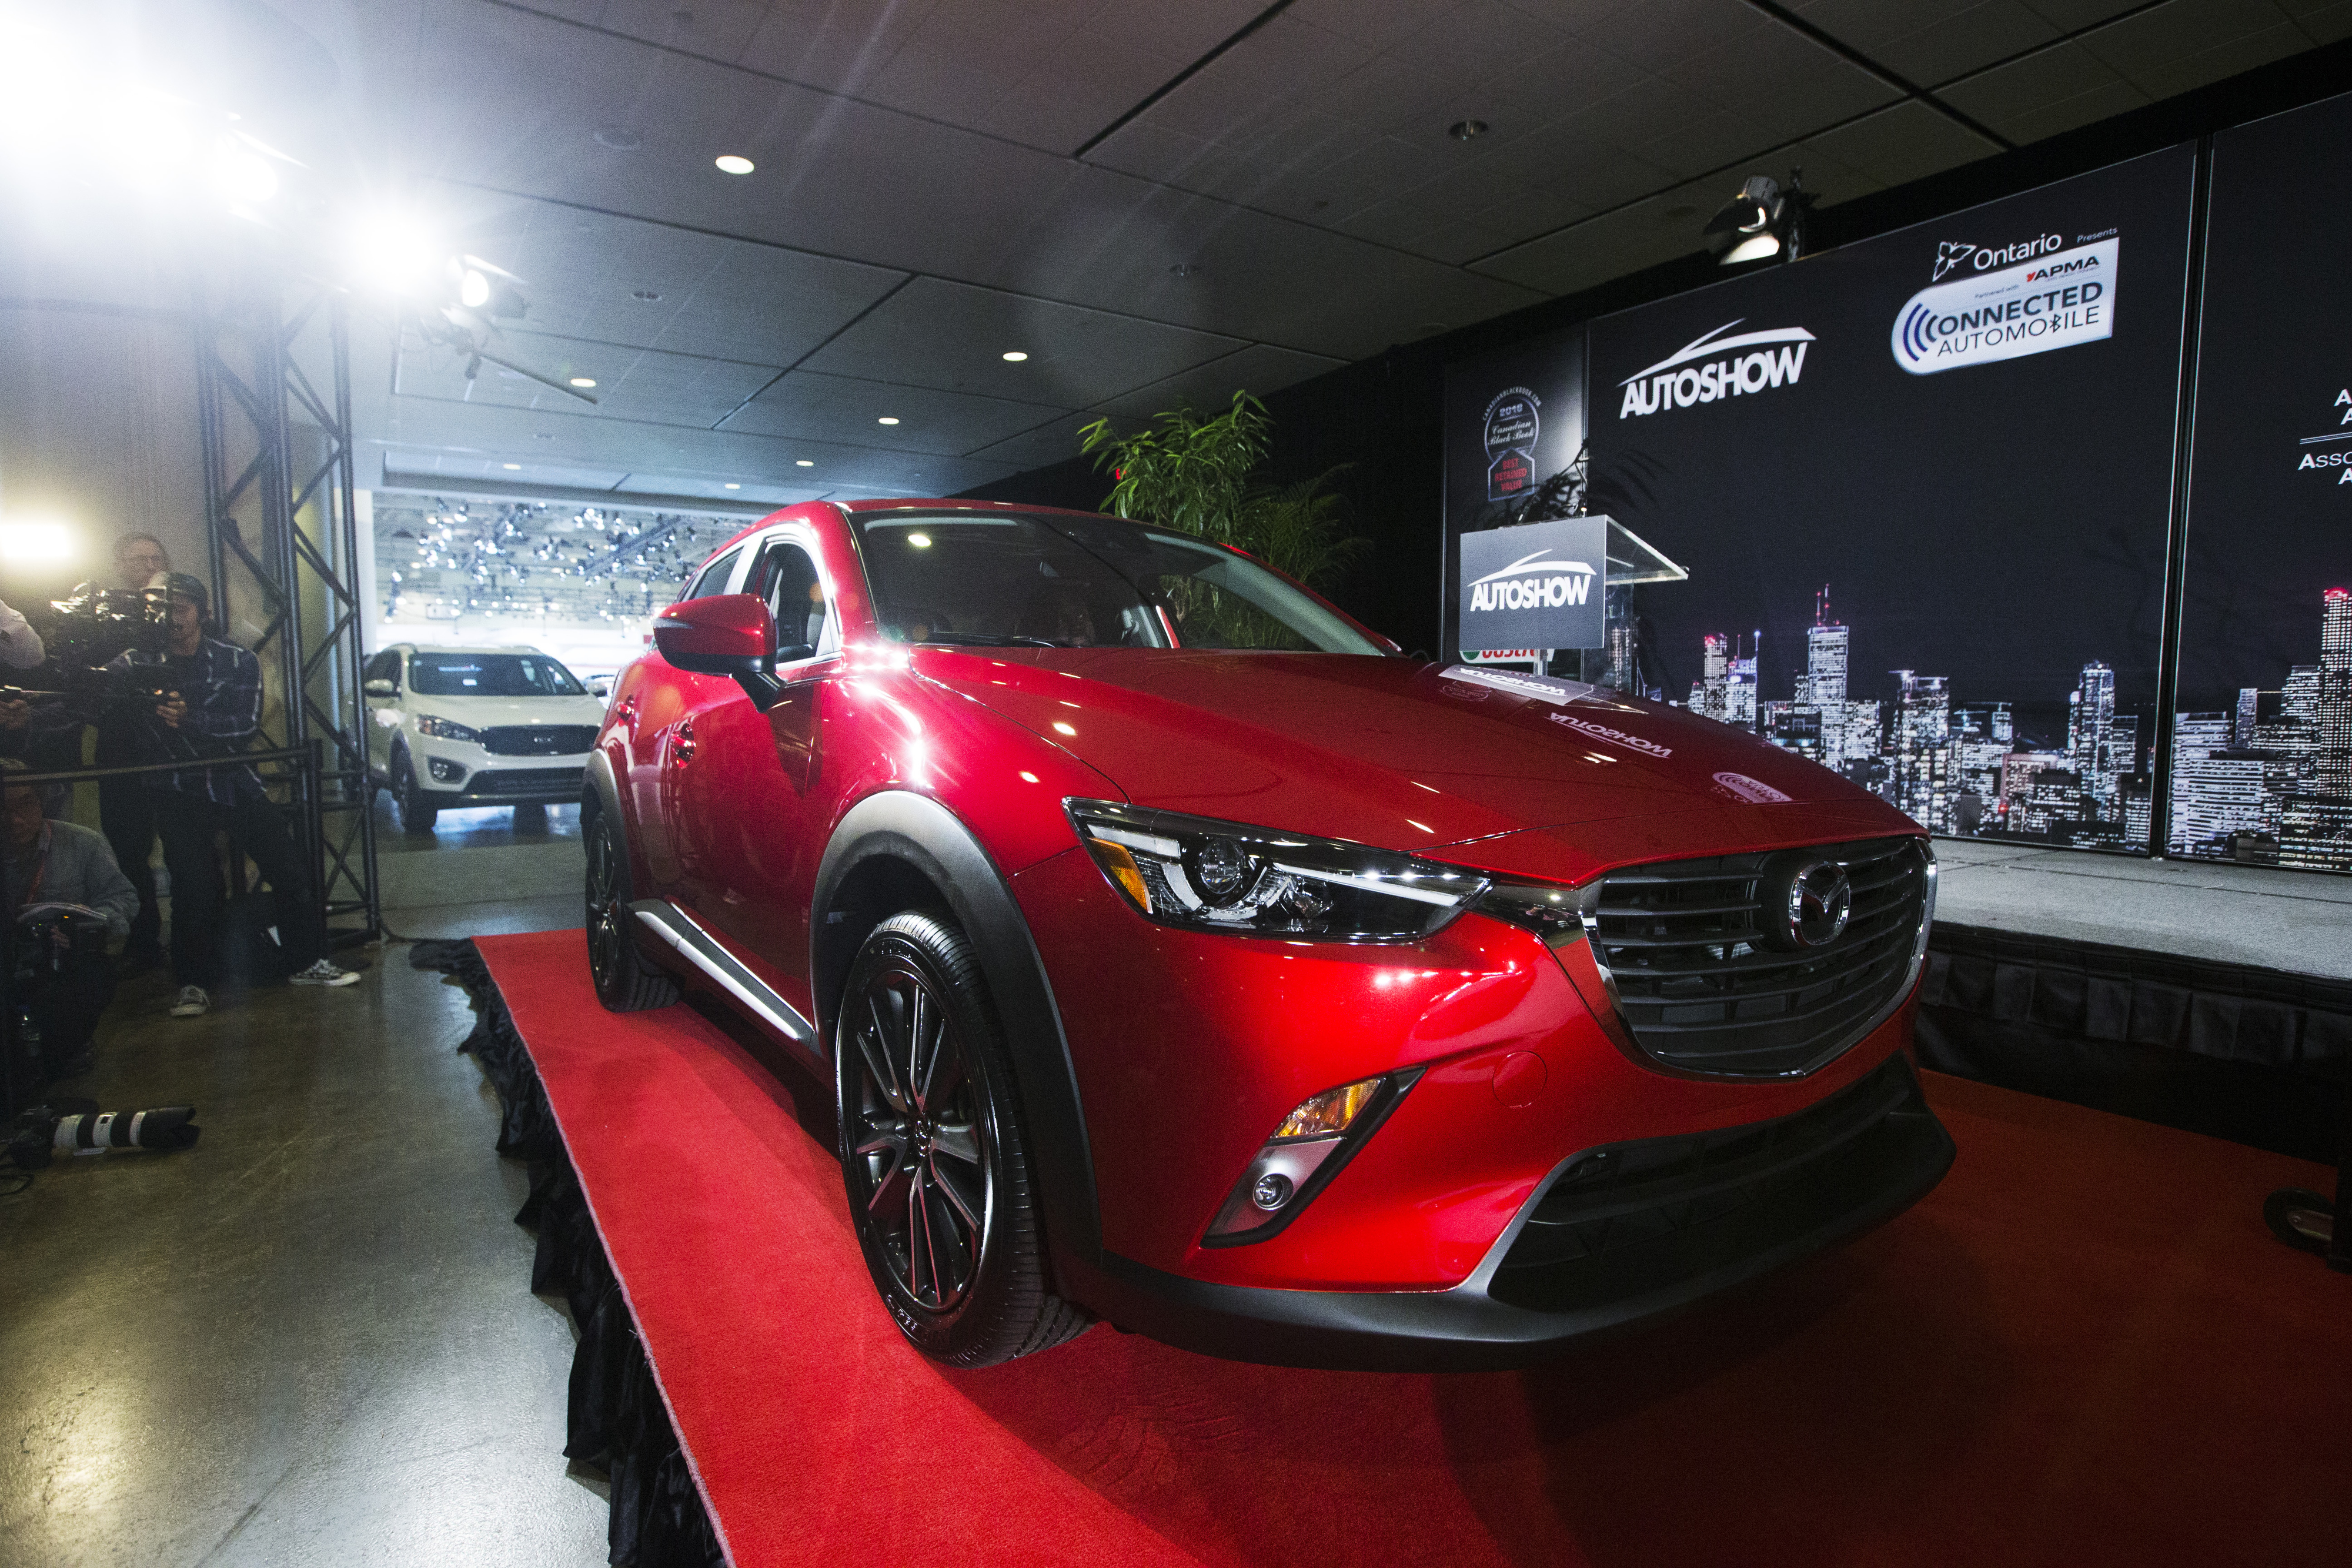 The Mazda CX-3 which claimed top honours as the utility vehicle was declared the 2016 Canadian Utility of the Year by the Automobile Journalists Association of Canada (AJAC).  (Photos By: Michelle Siu)